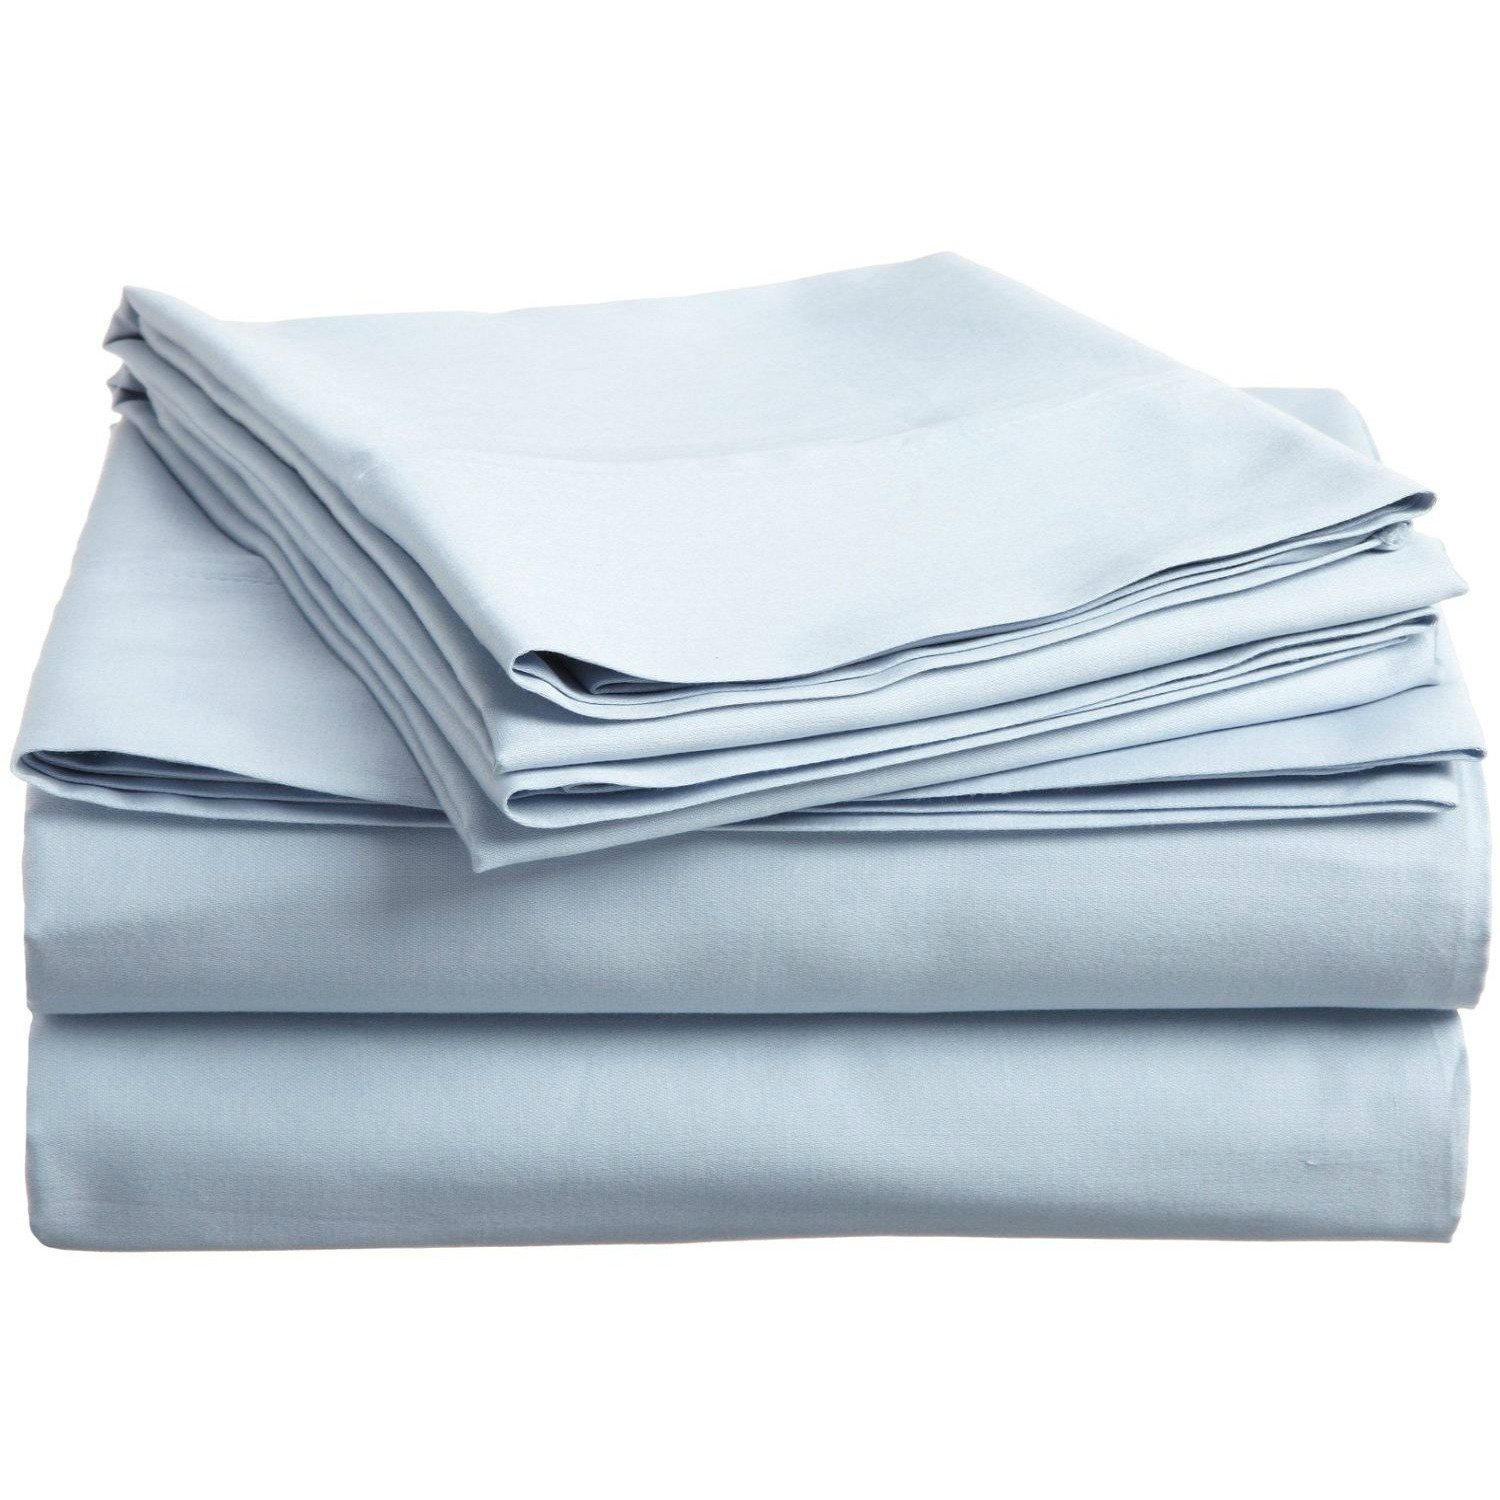 4 Piece King Light Blue Bed Sheet Set, Ultra cozy, super soft, lightweight, durable, satiny smooth, Fully Elasticized, Sateen weave with 300 thread count, Sky Blue, Cotton